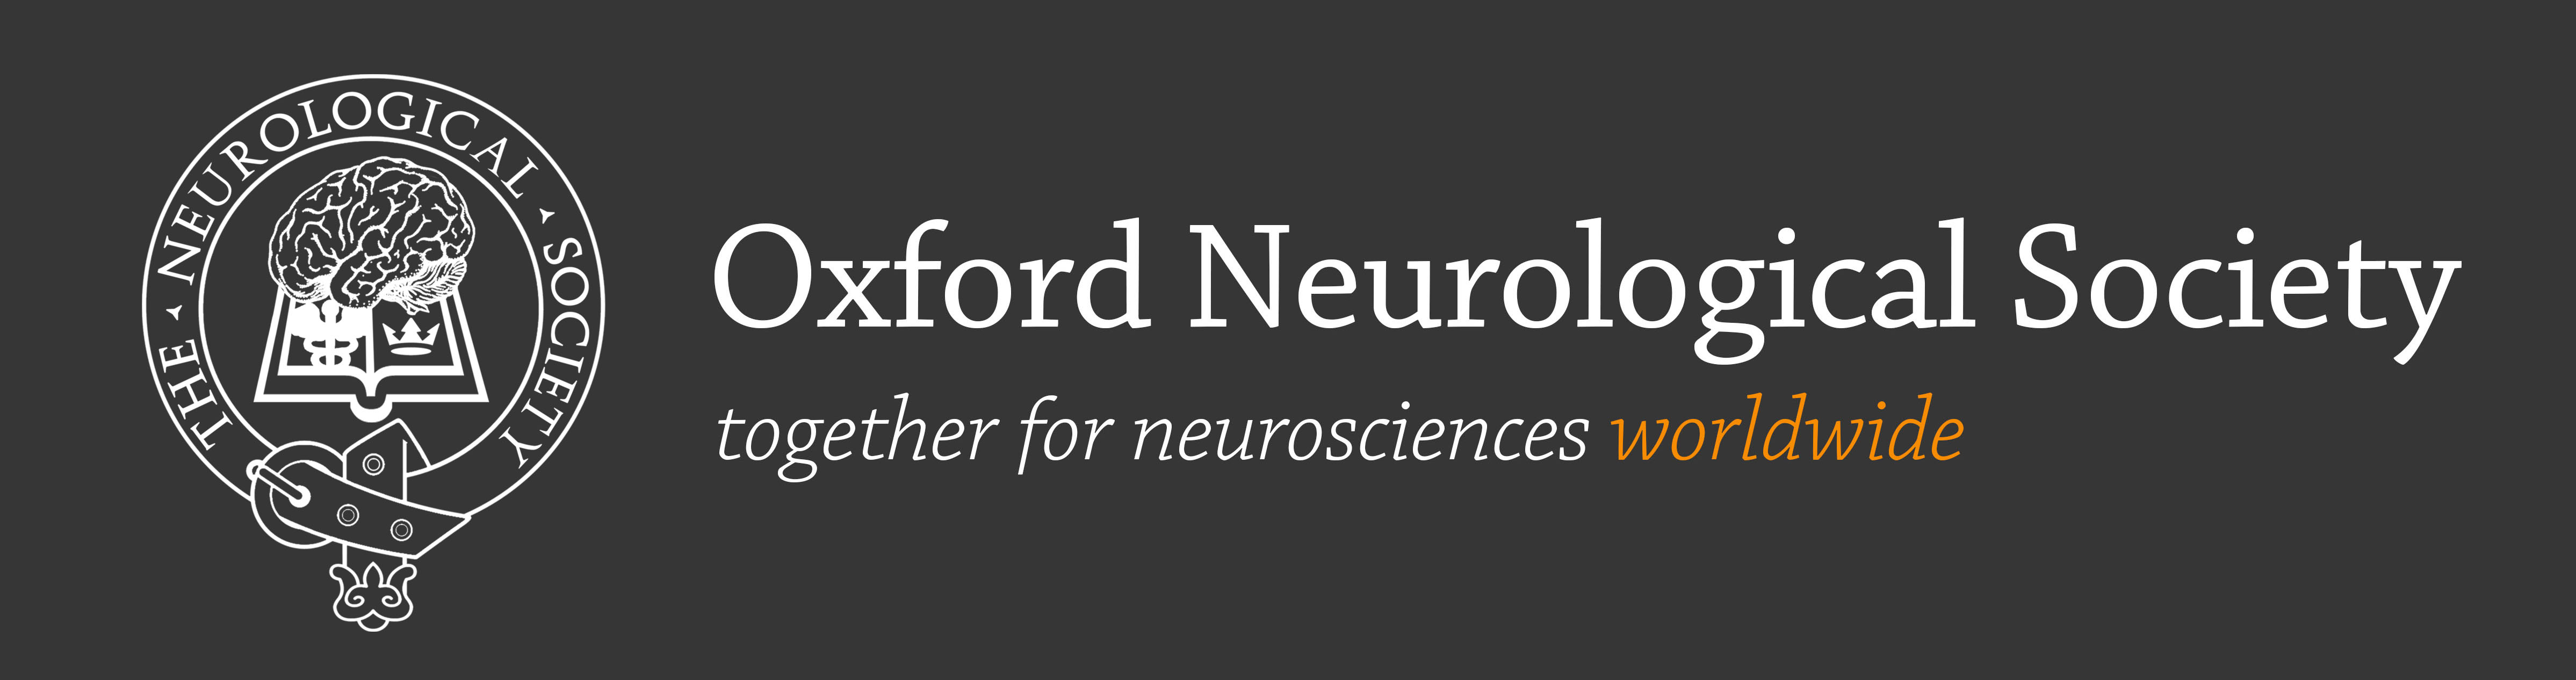 Oxford Neurological Society